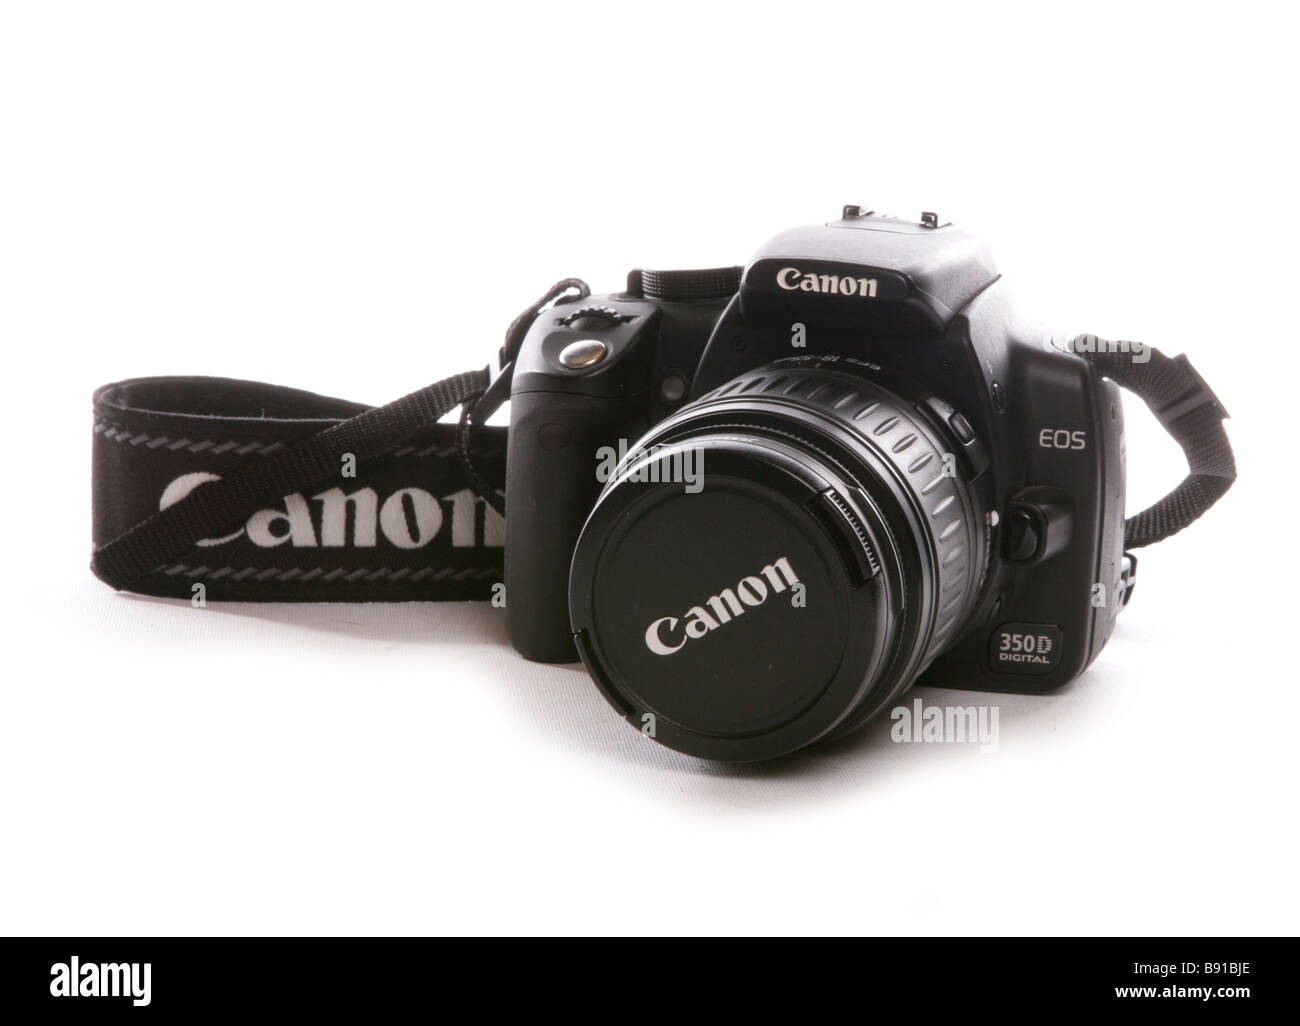 Canon Slr digital camera cutout - Stock Image